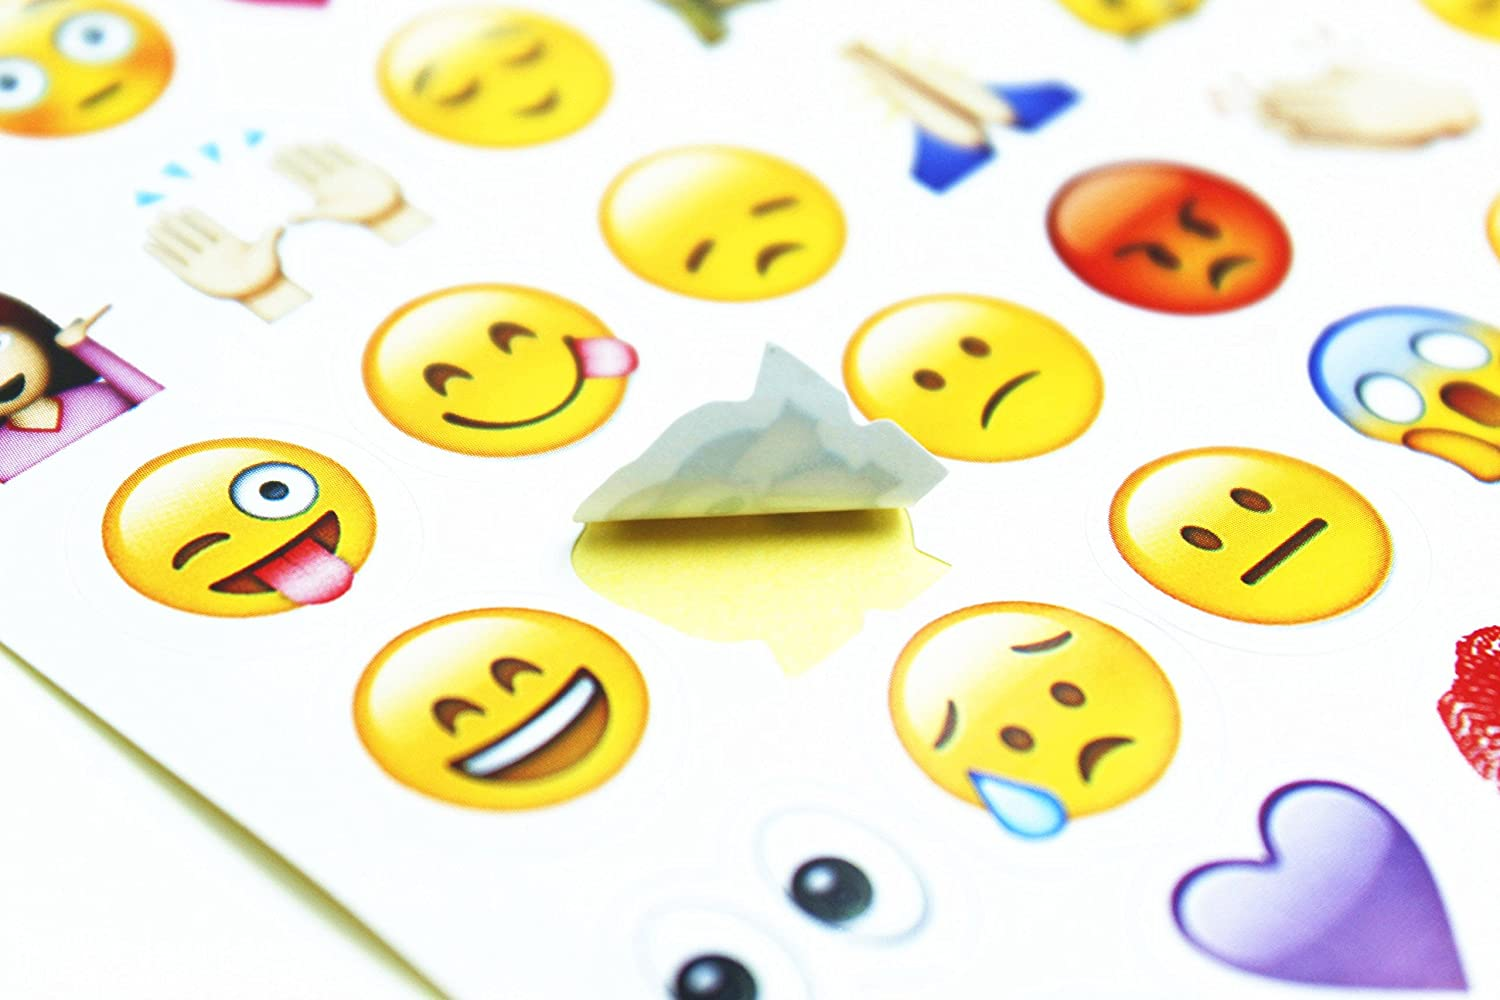 Amazon happy emoji stickers 19 sheets with emojis faces kid amazon happy emoji stickers 19 sheets with emojis faces kid stickers from iphone facebook twitter toys games biocorpaavc Images